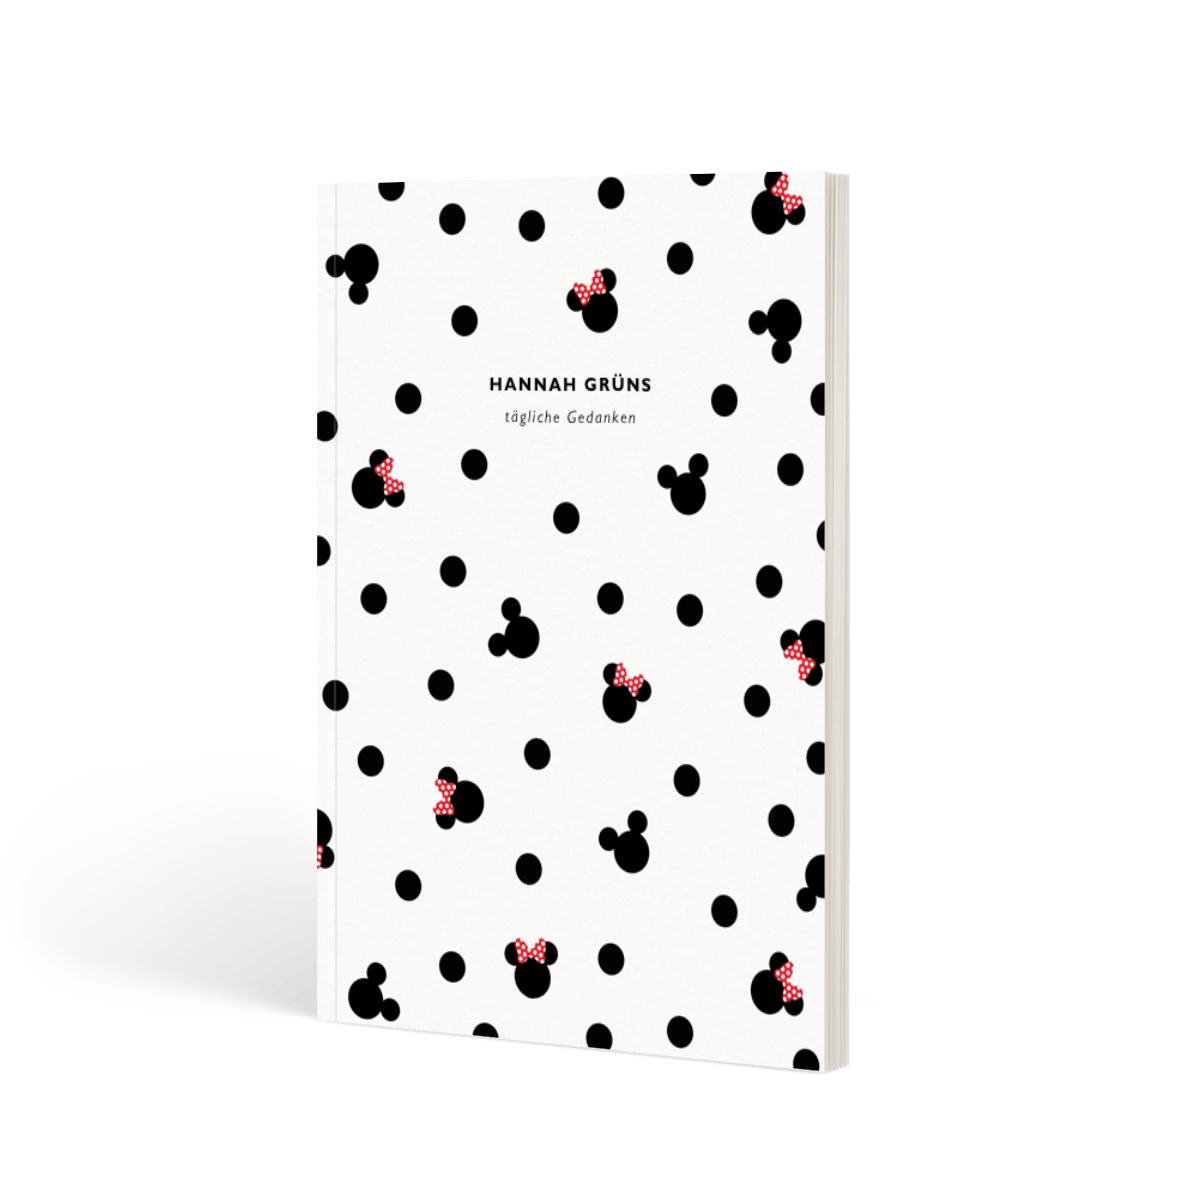 Https%3a%2f%2fwww.papier.com%2fproduct image%2f55818%2f6%2fmickey minnie mouse 13405 vorderseite 1542299837.png?ixlib=rb 1.1